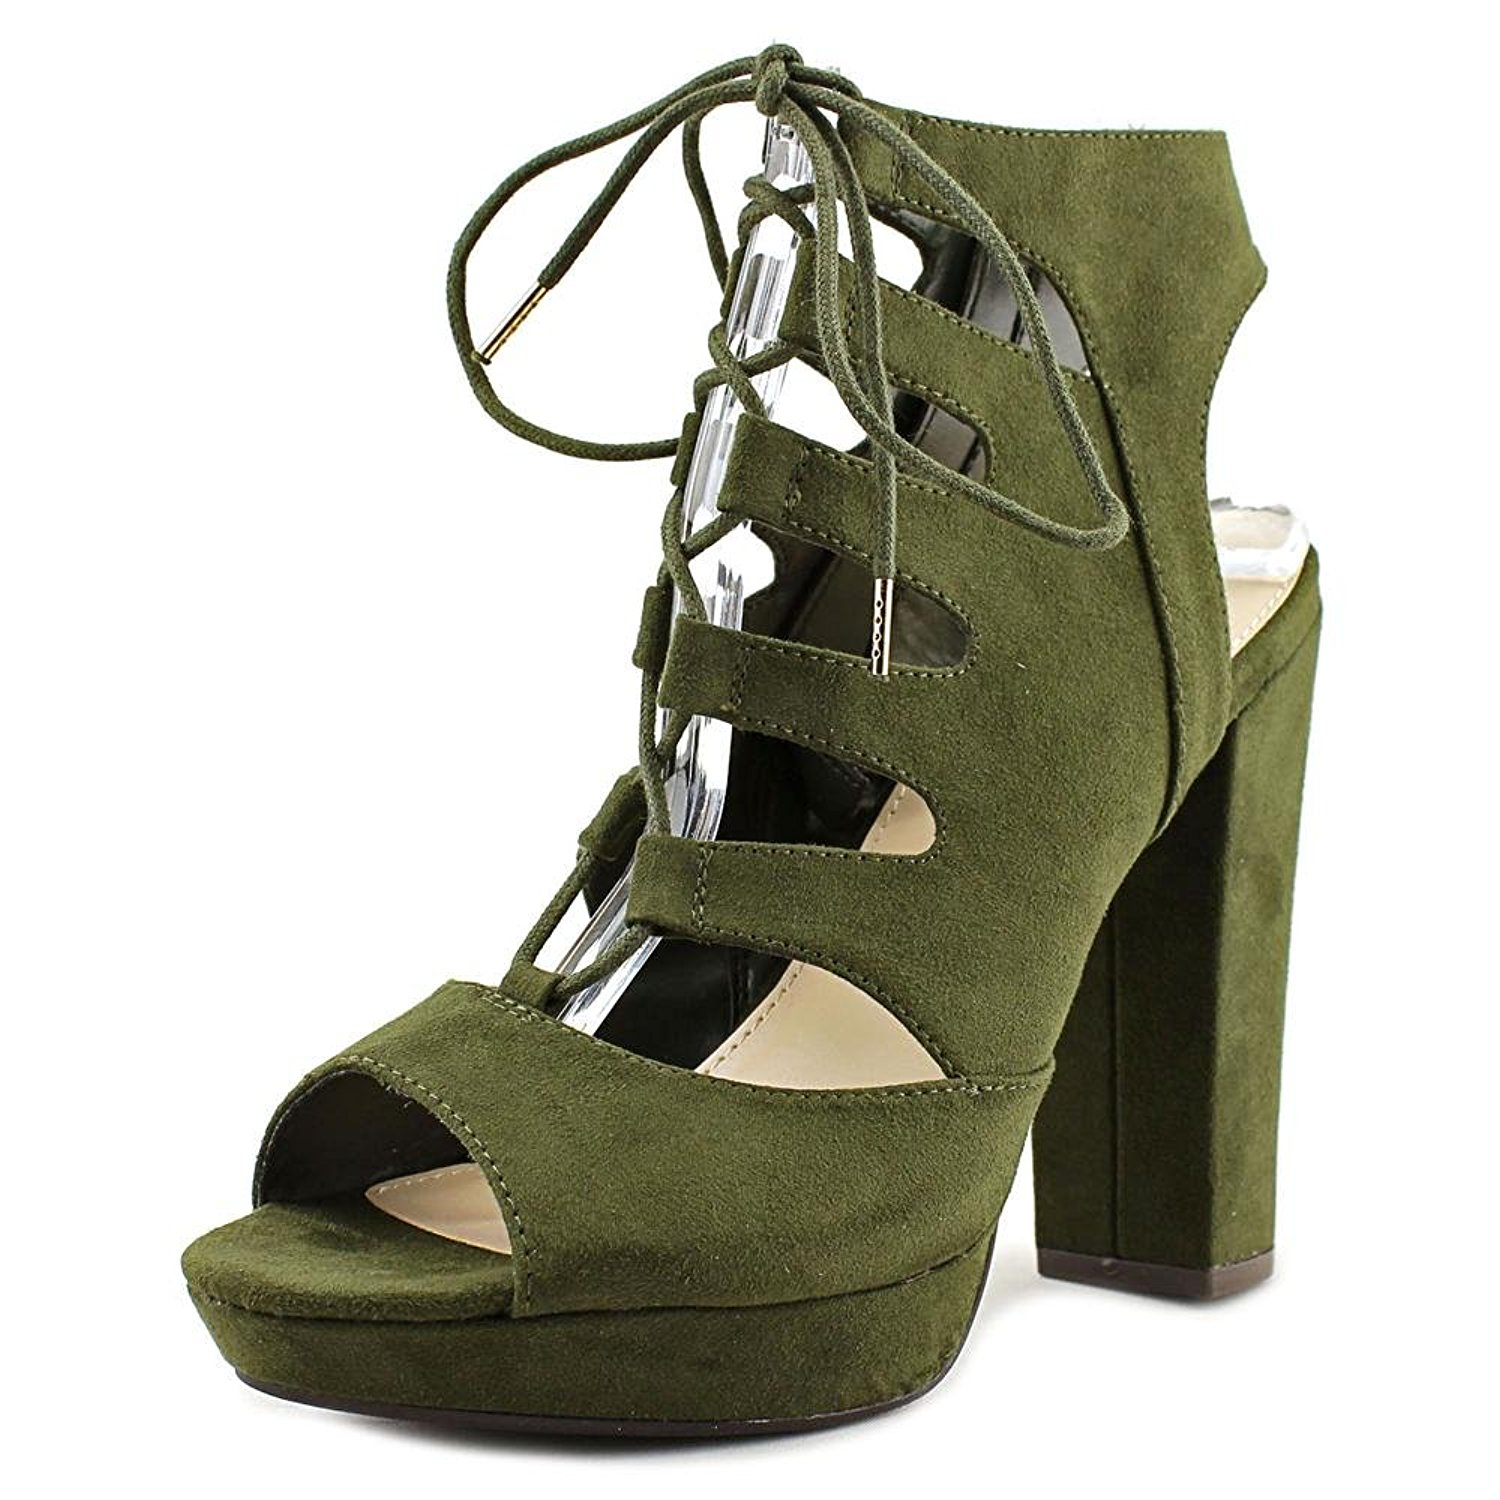 60e86a48ee7 Get Quotations · Bar III Womens Nelly Fabric Open Toe Casual Strappy Sandals